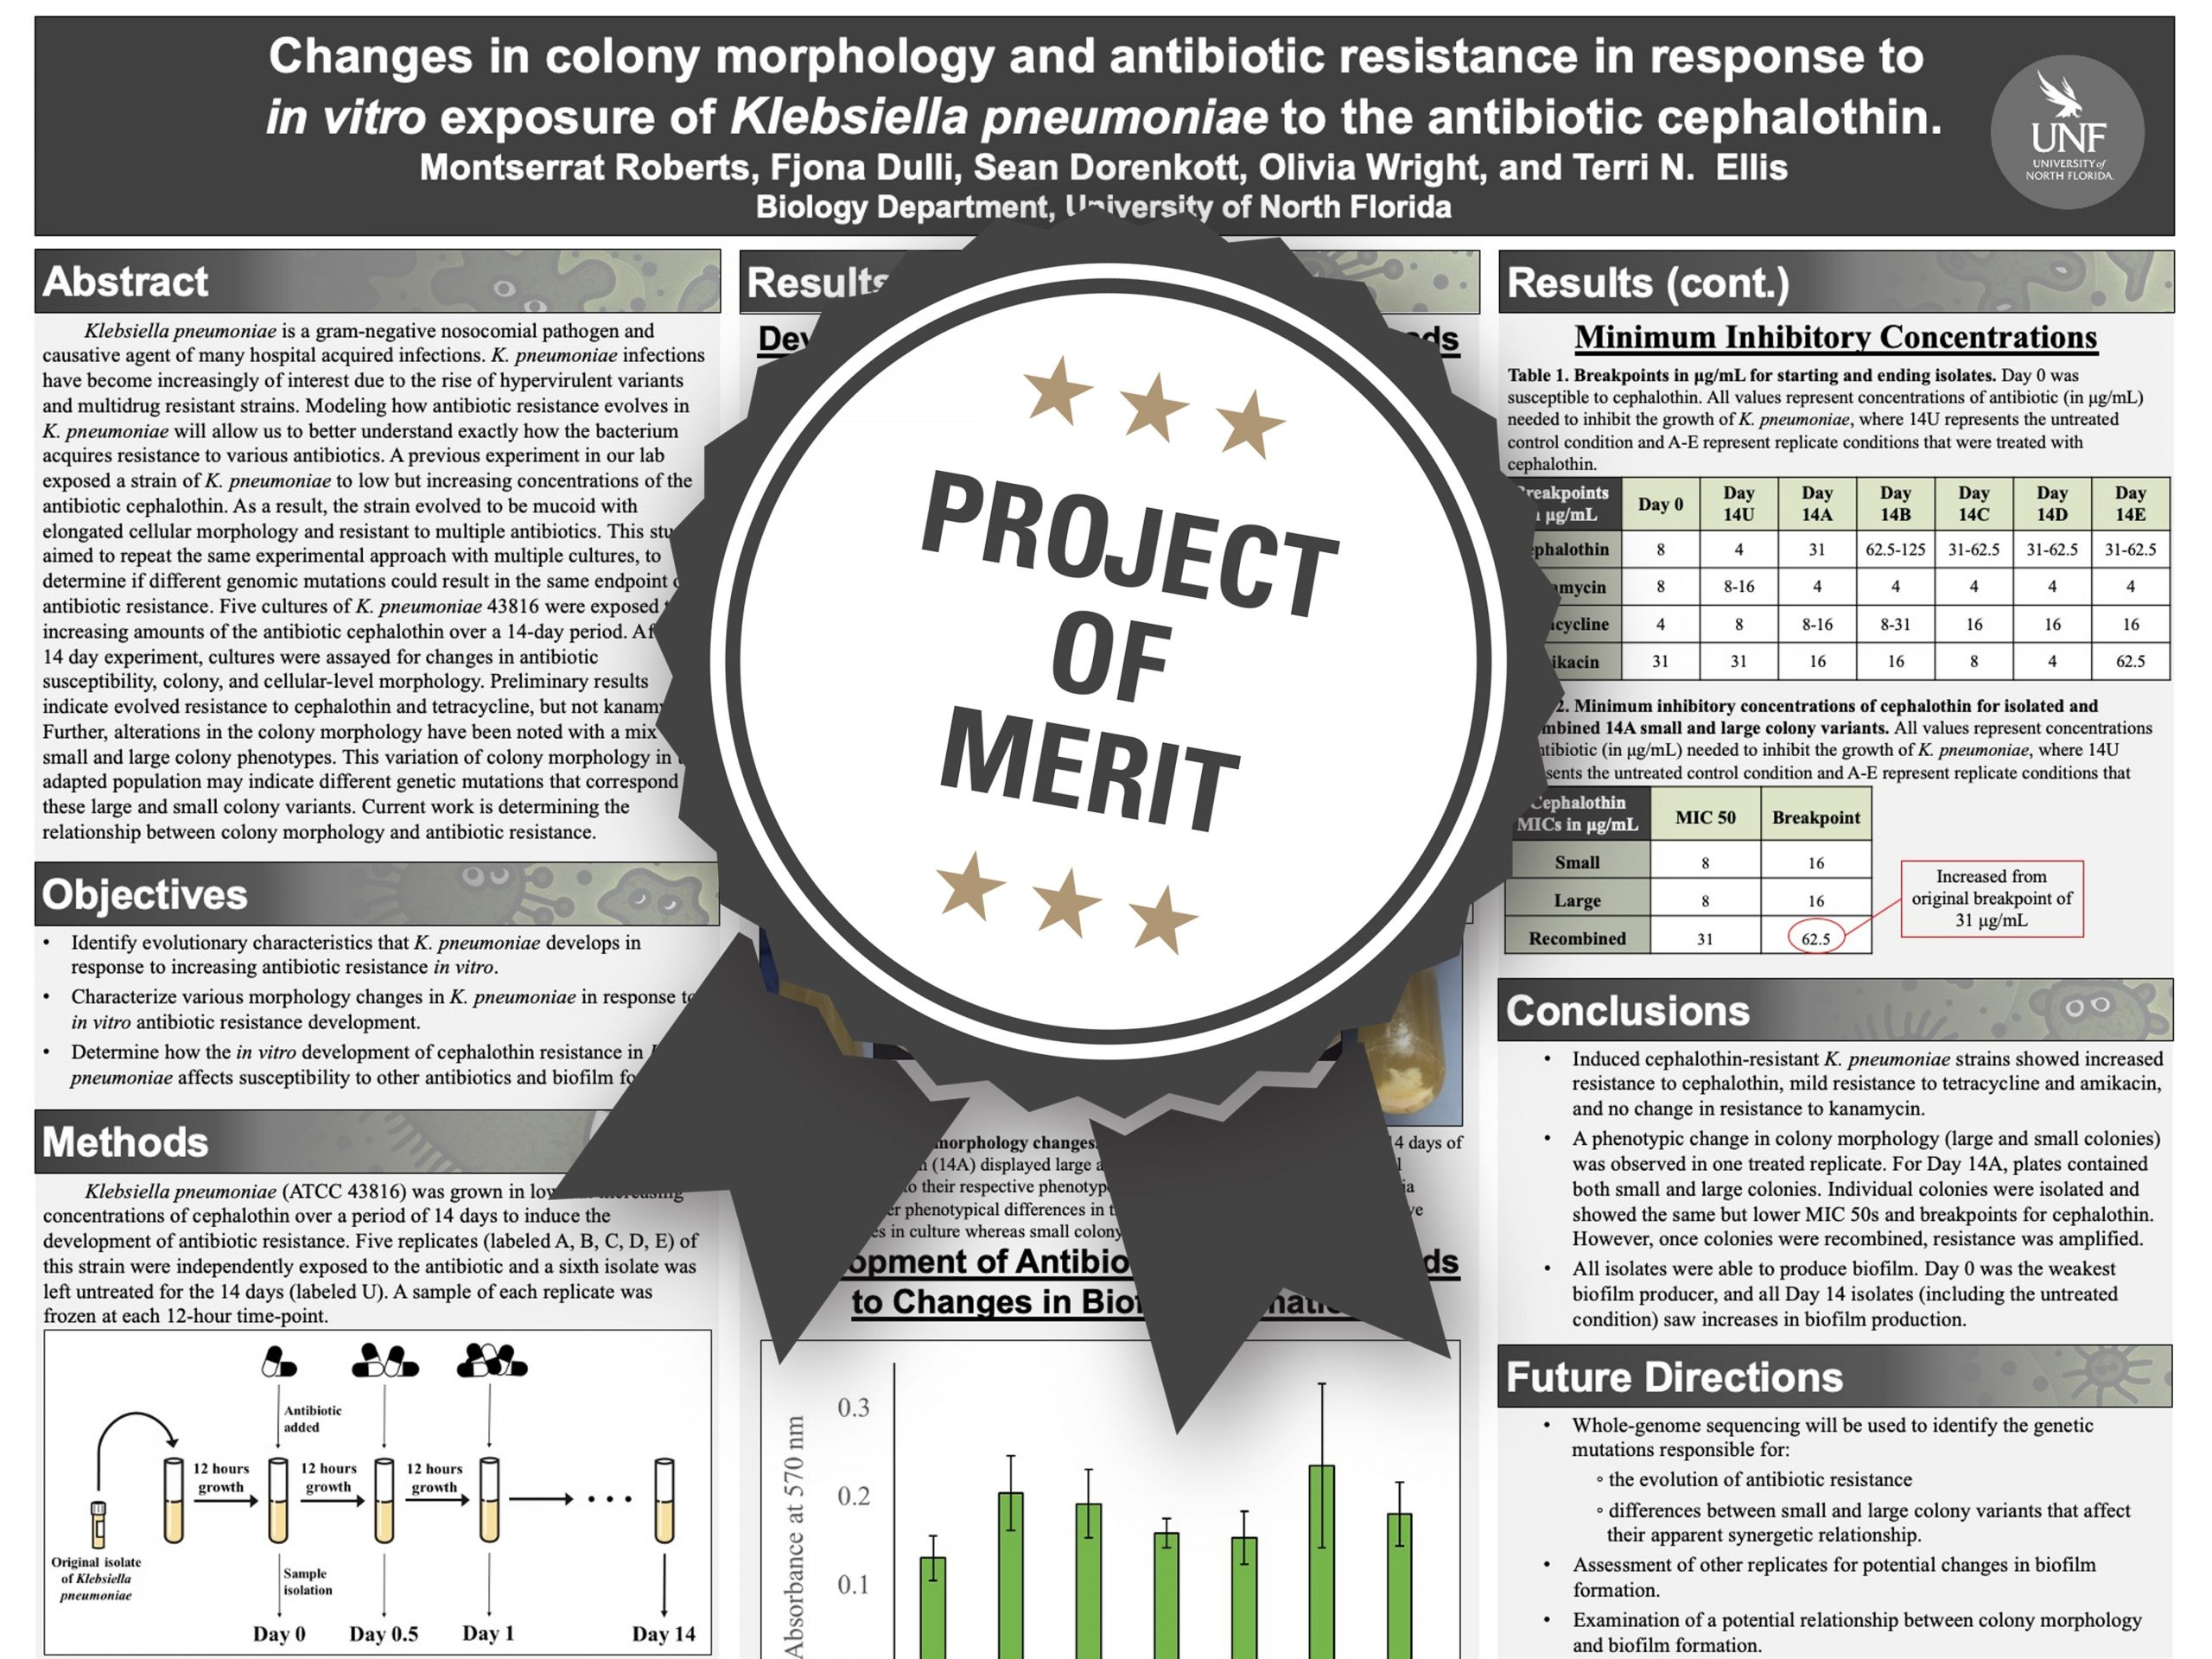 Changes in colony morphology and antibiotic resistance in response to in vitro exposure of Klebsiella pneumoniae to the antibiotic cephalothin Project of Merit poster